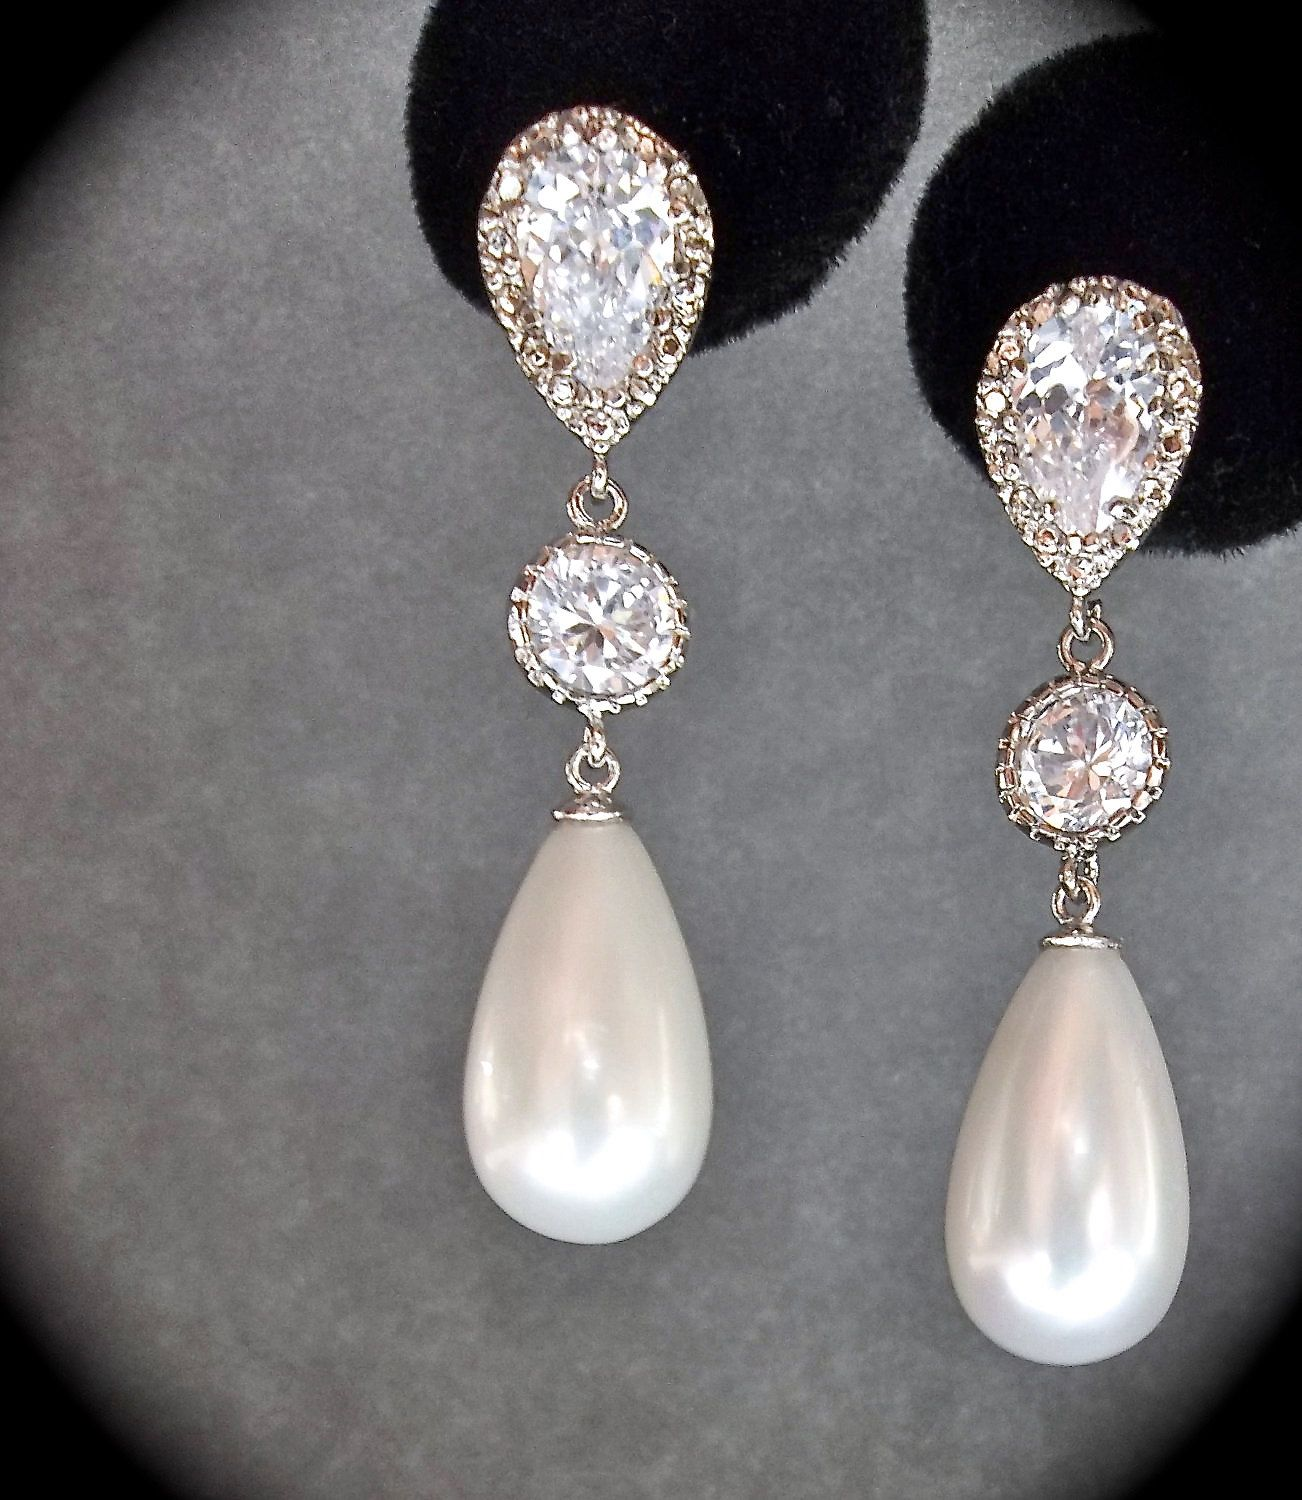 Bridal Jewelry Sterling Silver Long Pearl Drop Earrings Brides 42 99 Via Etsy